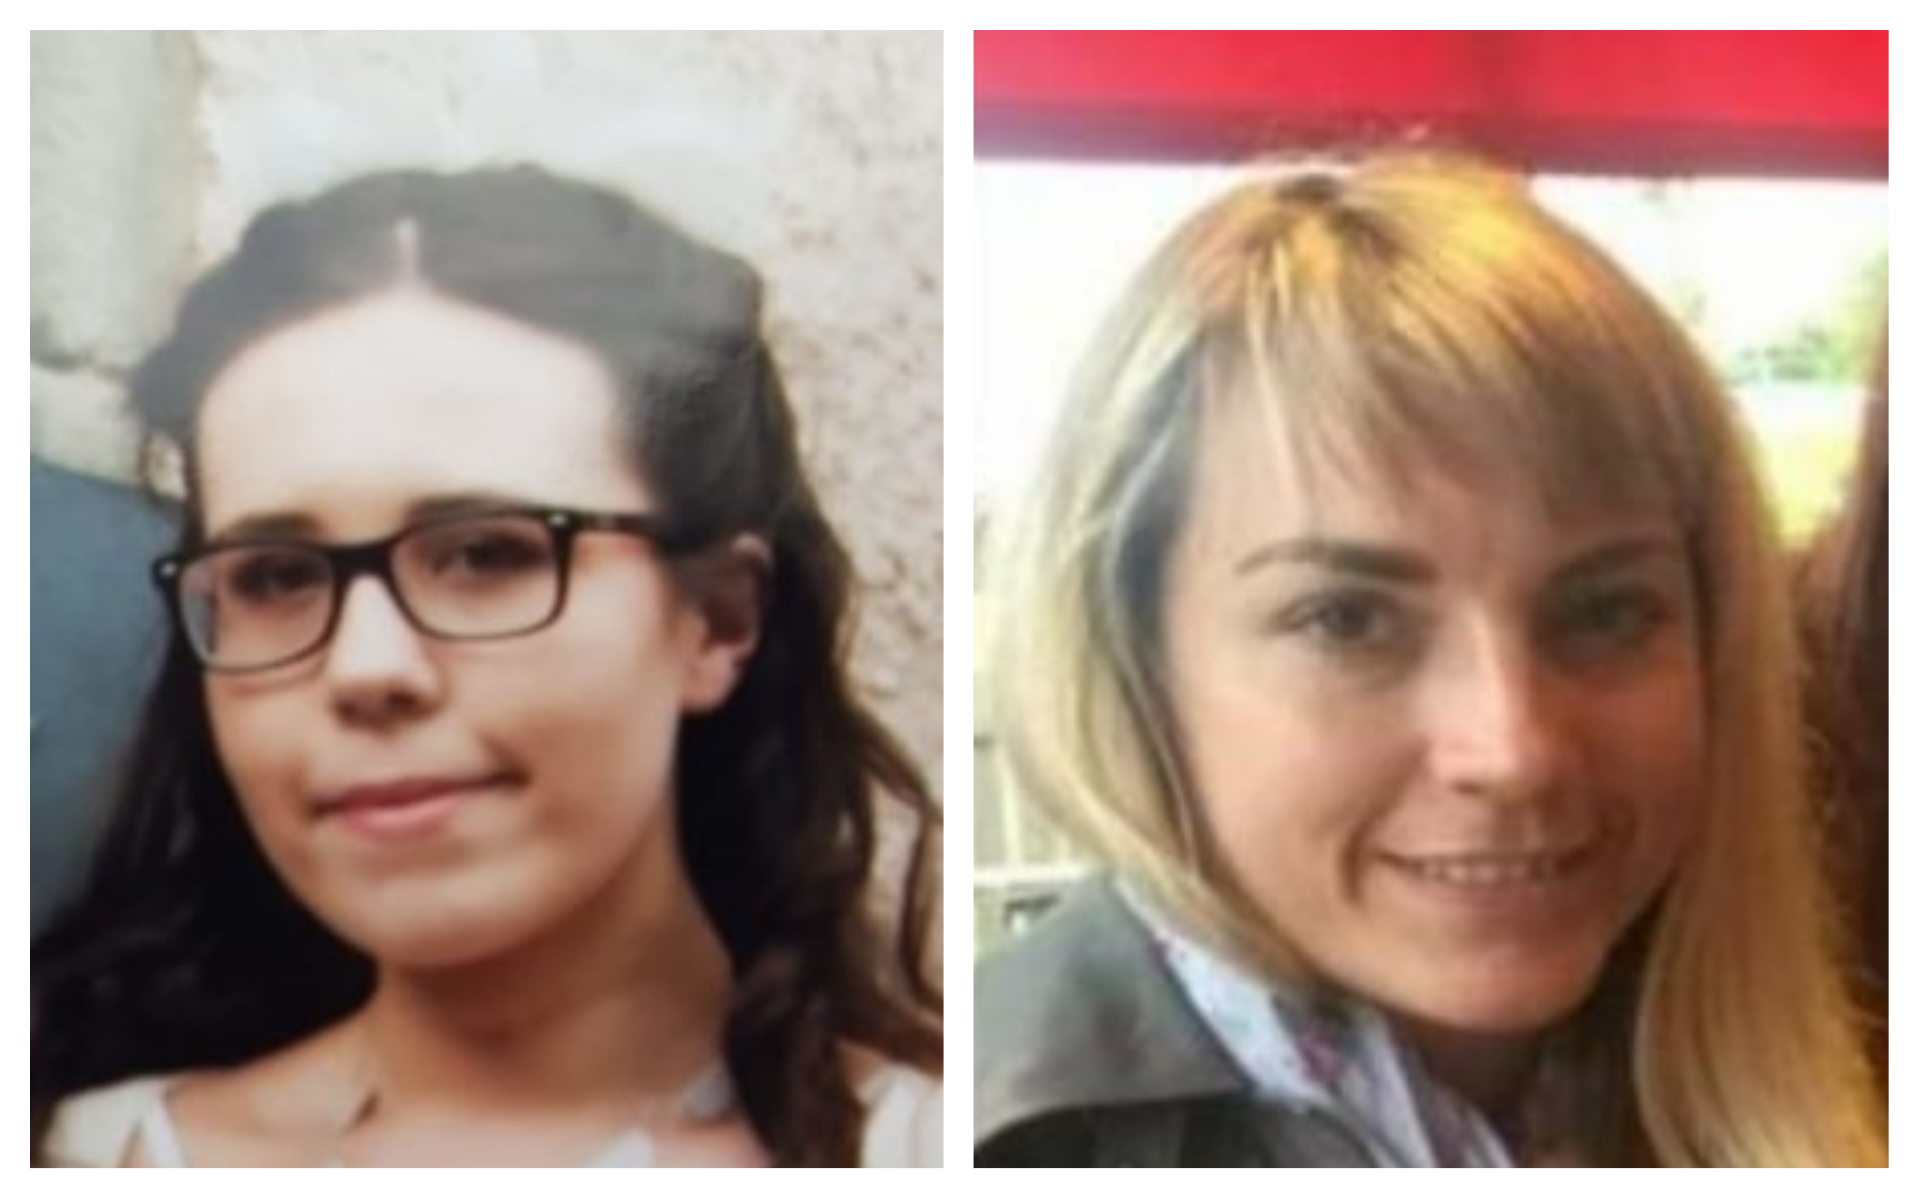 Missing Chloe Marshall and Jessica McRitchie have been traced.